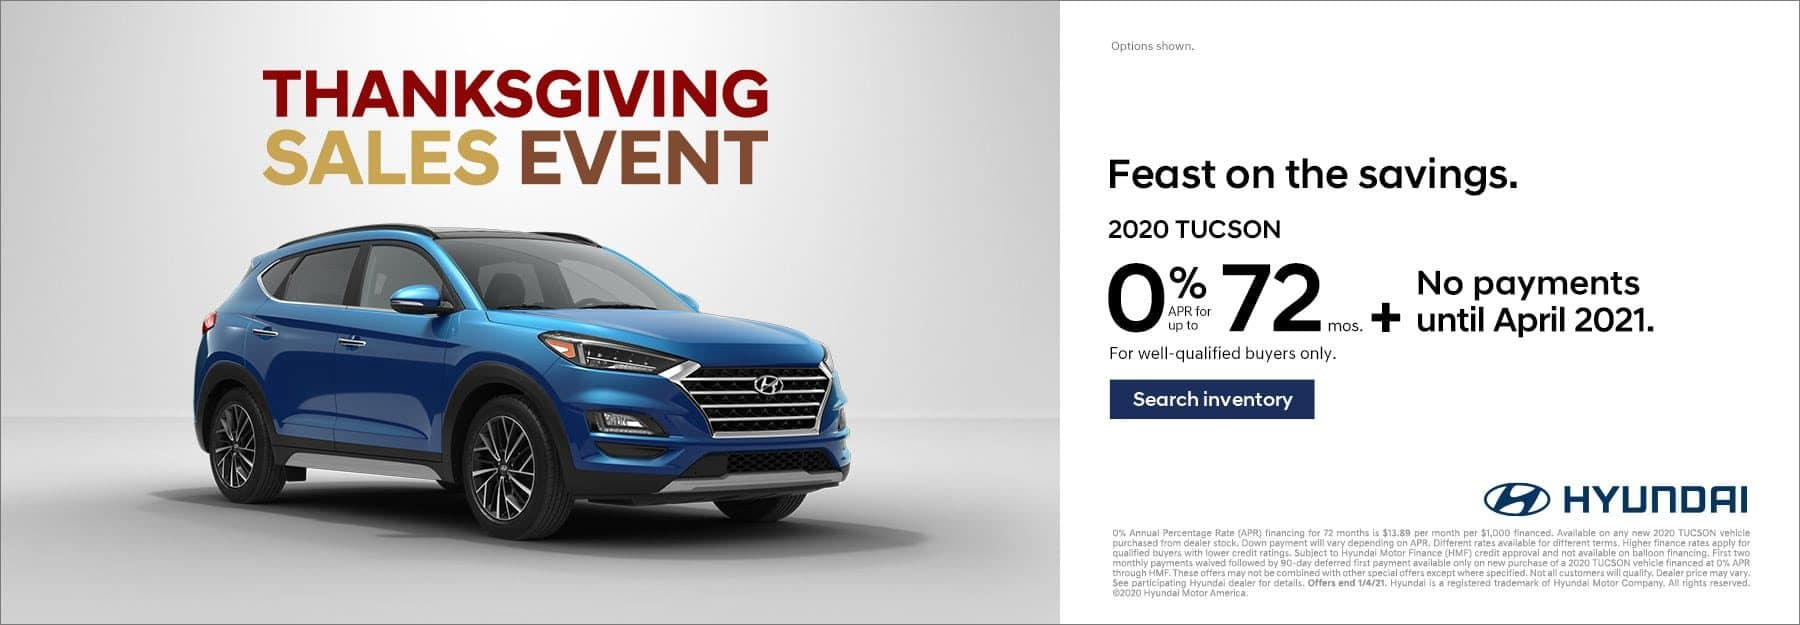 Thanksgiving Sales Event Tucson